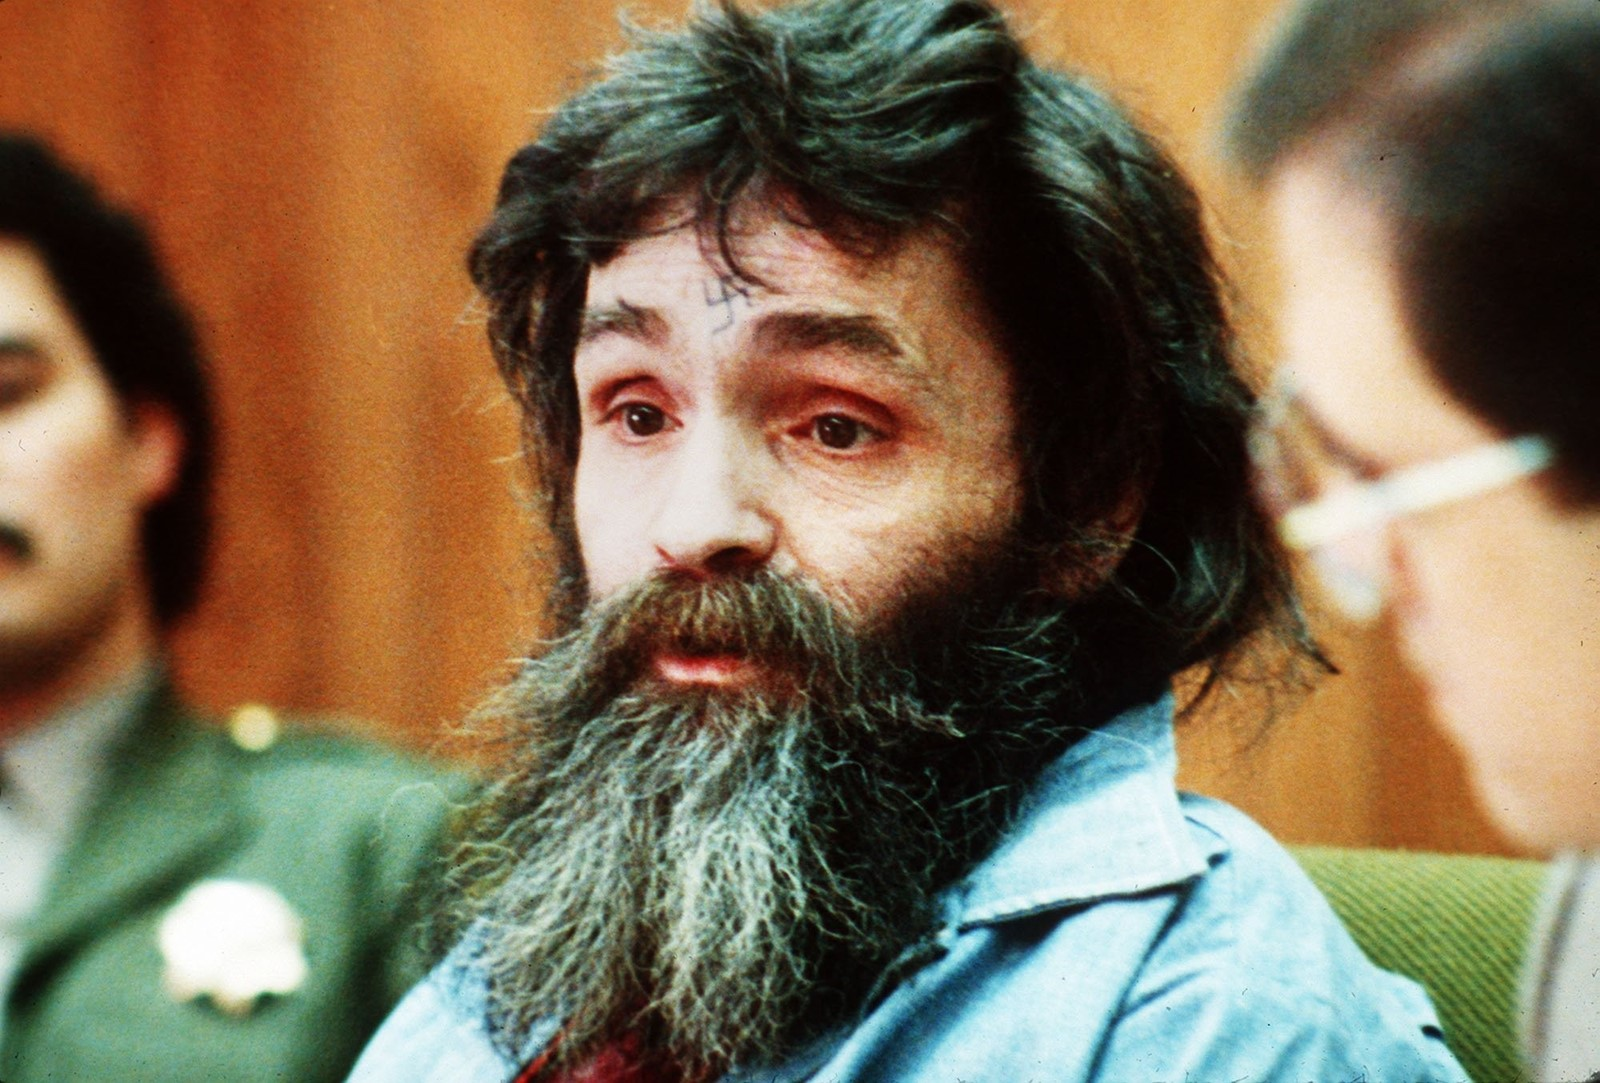 Charles Manson was denied parole on May 23, 2007, his 11th rejection since 1978. — Photograph: Associated Press.